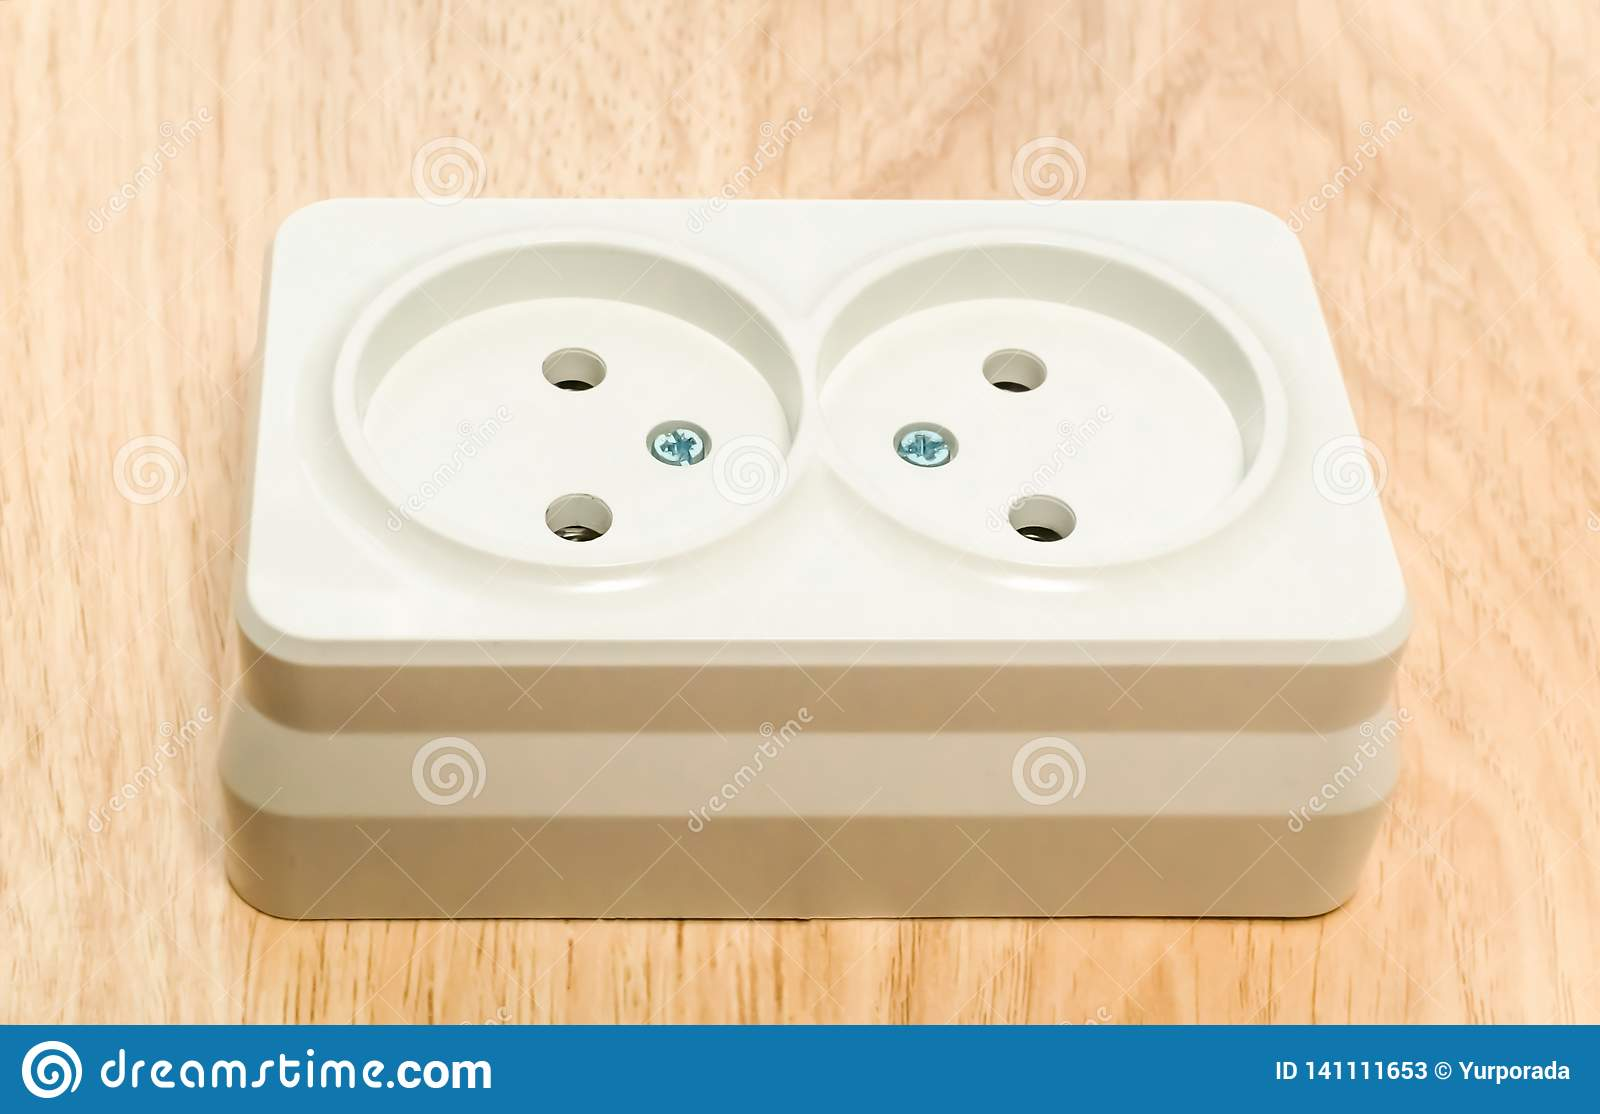 Close-up of a white outlet on a wooden table